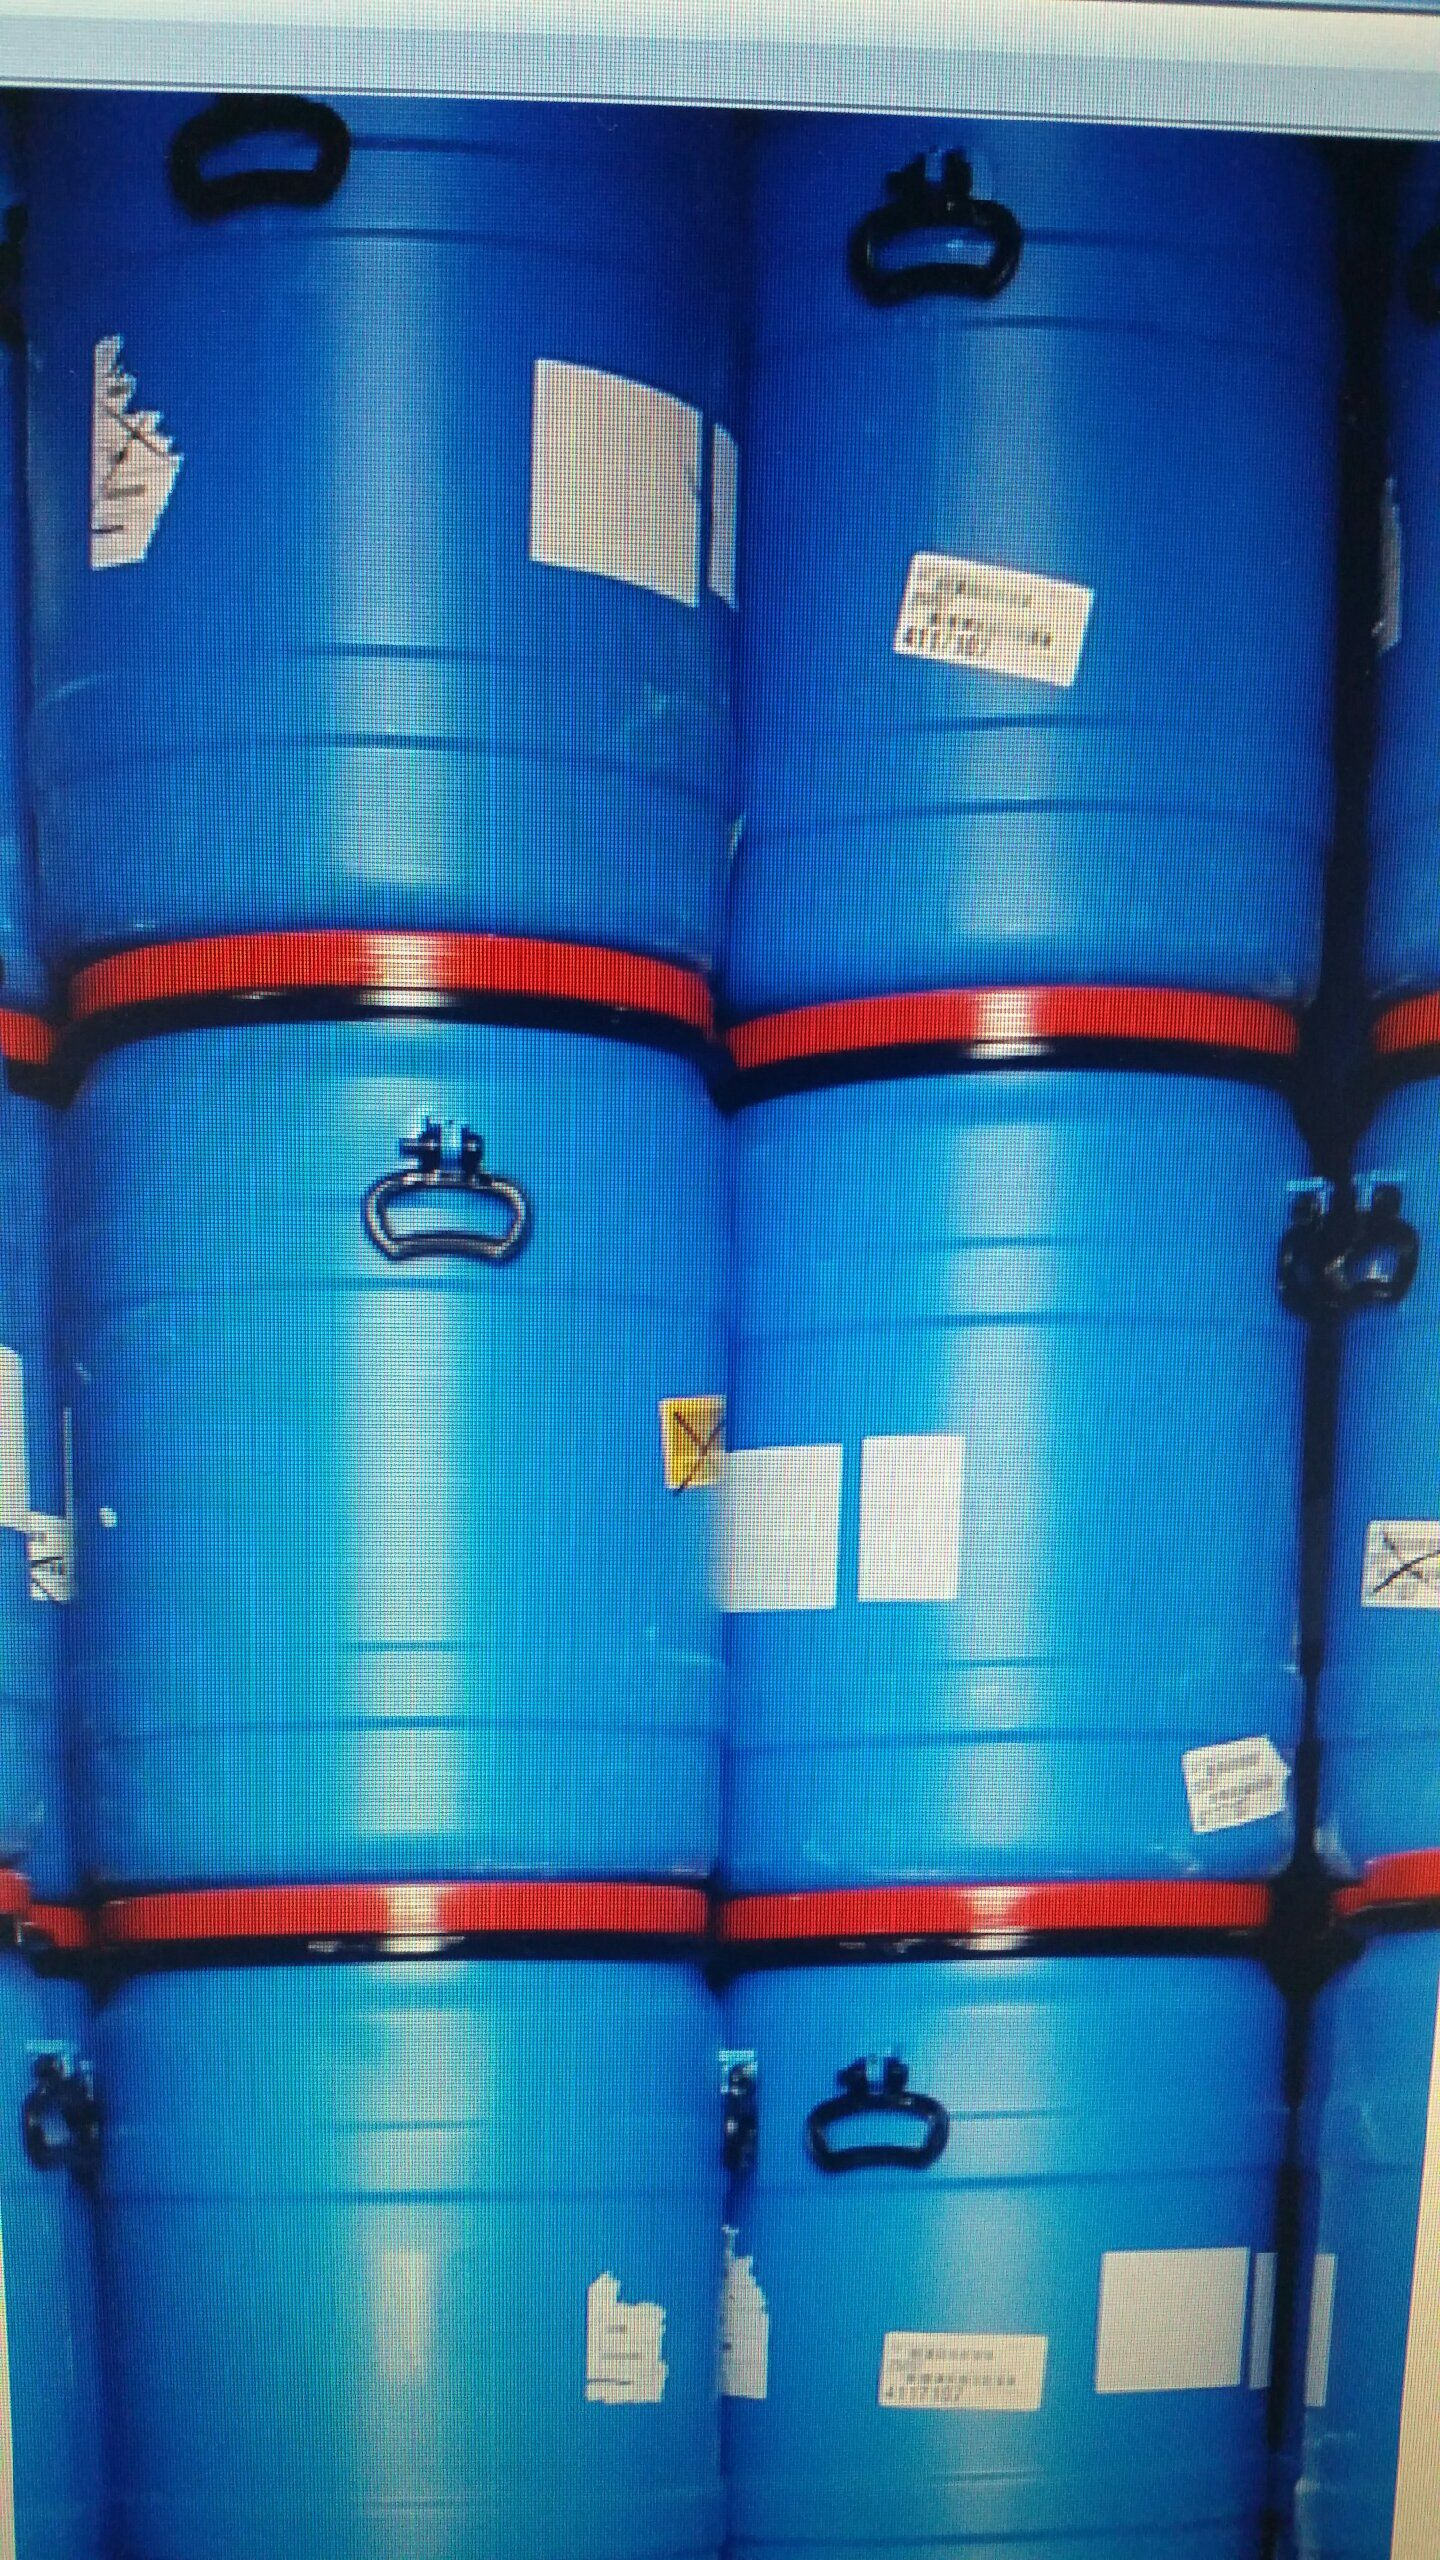 40 Gallon Food Grade Plastic Drum 40 Gallon Plastic Barrels Open Top With Lid And Clamping Ring And Two Handles Some Plastic Drums Rain Barrel Water Storage